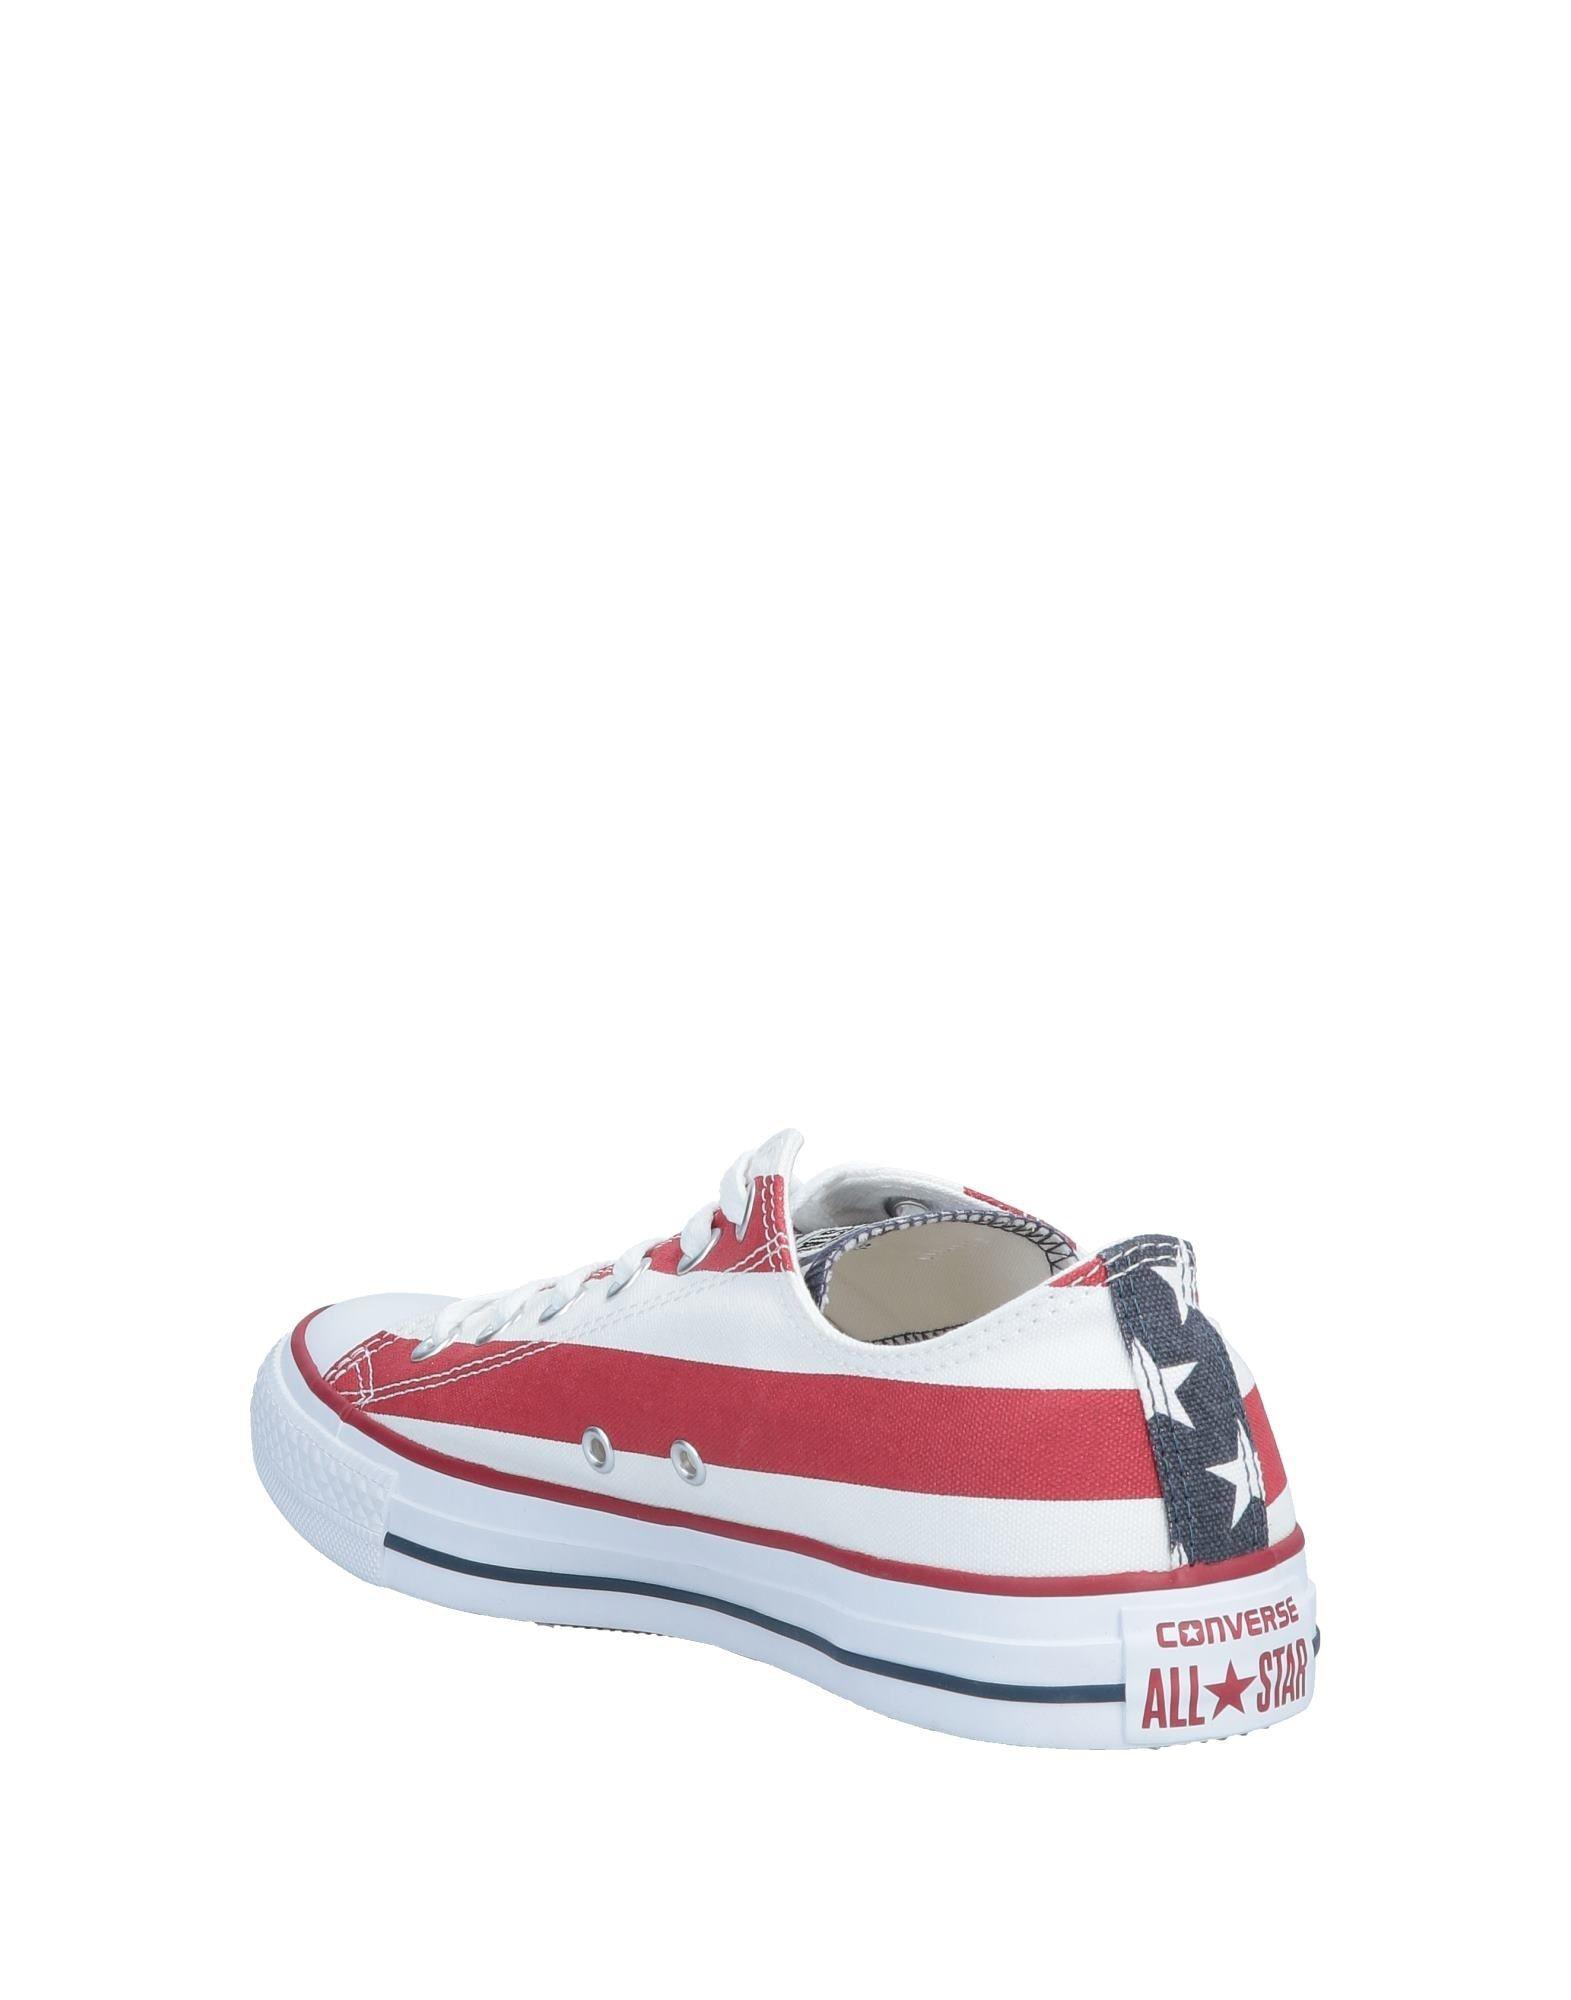 b33cc2441783 Converse Low-tops   Sneakers in Red for Men - Lyst